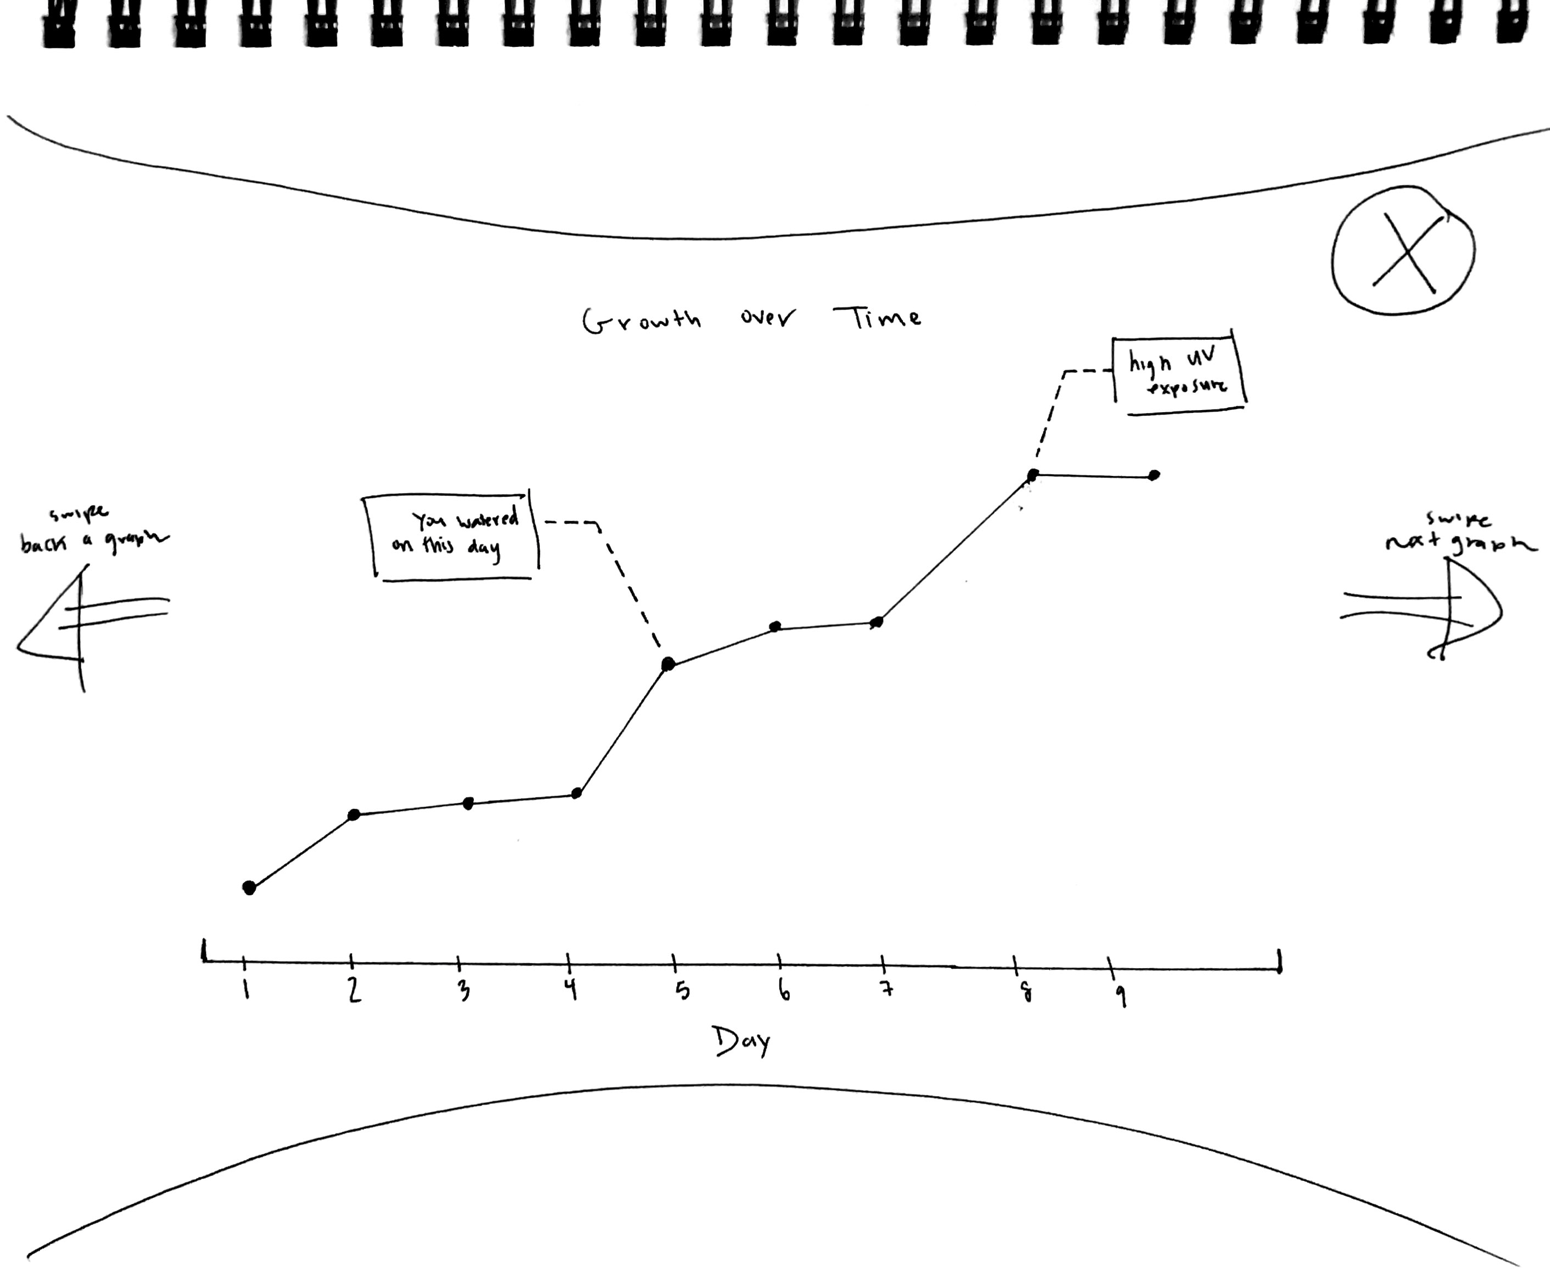 Plant care sketch ui 3.png